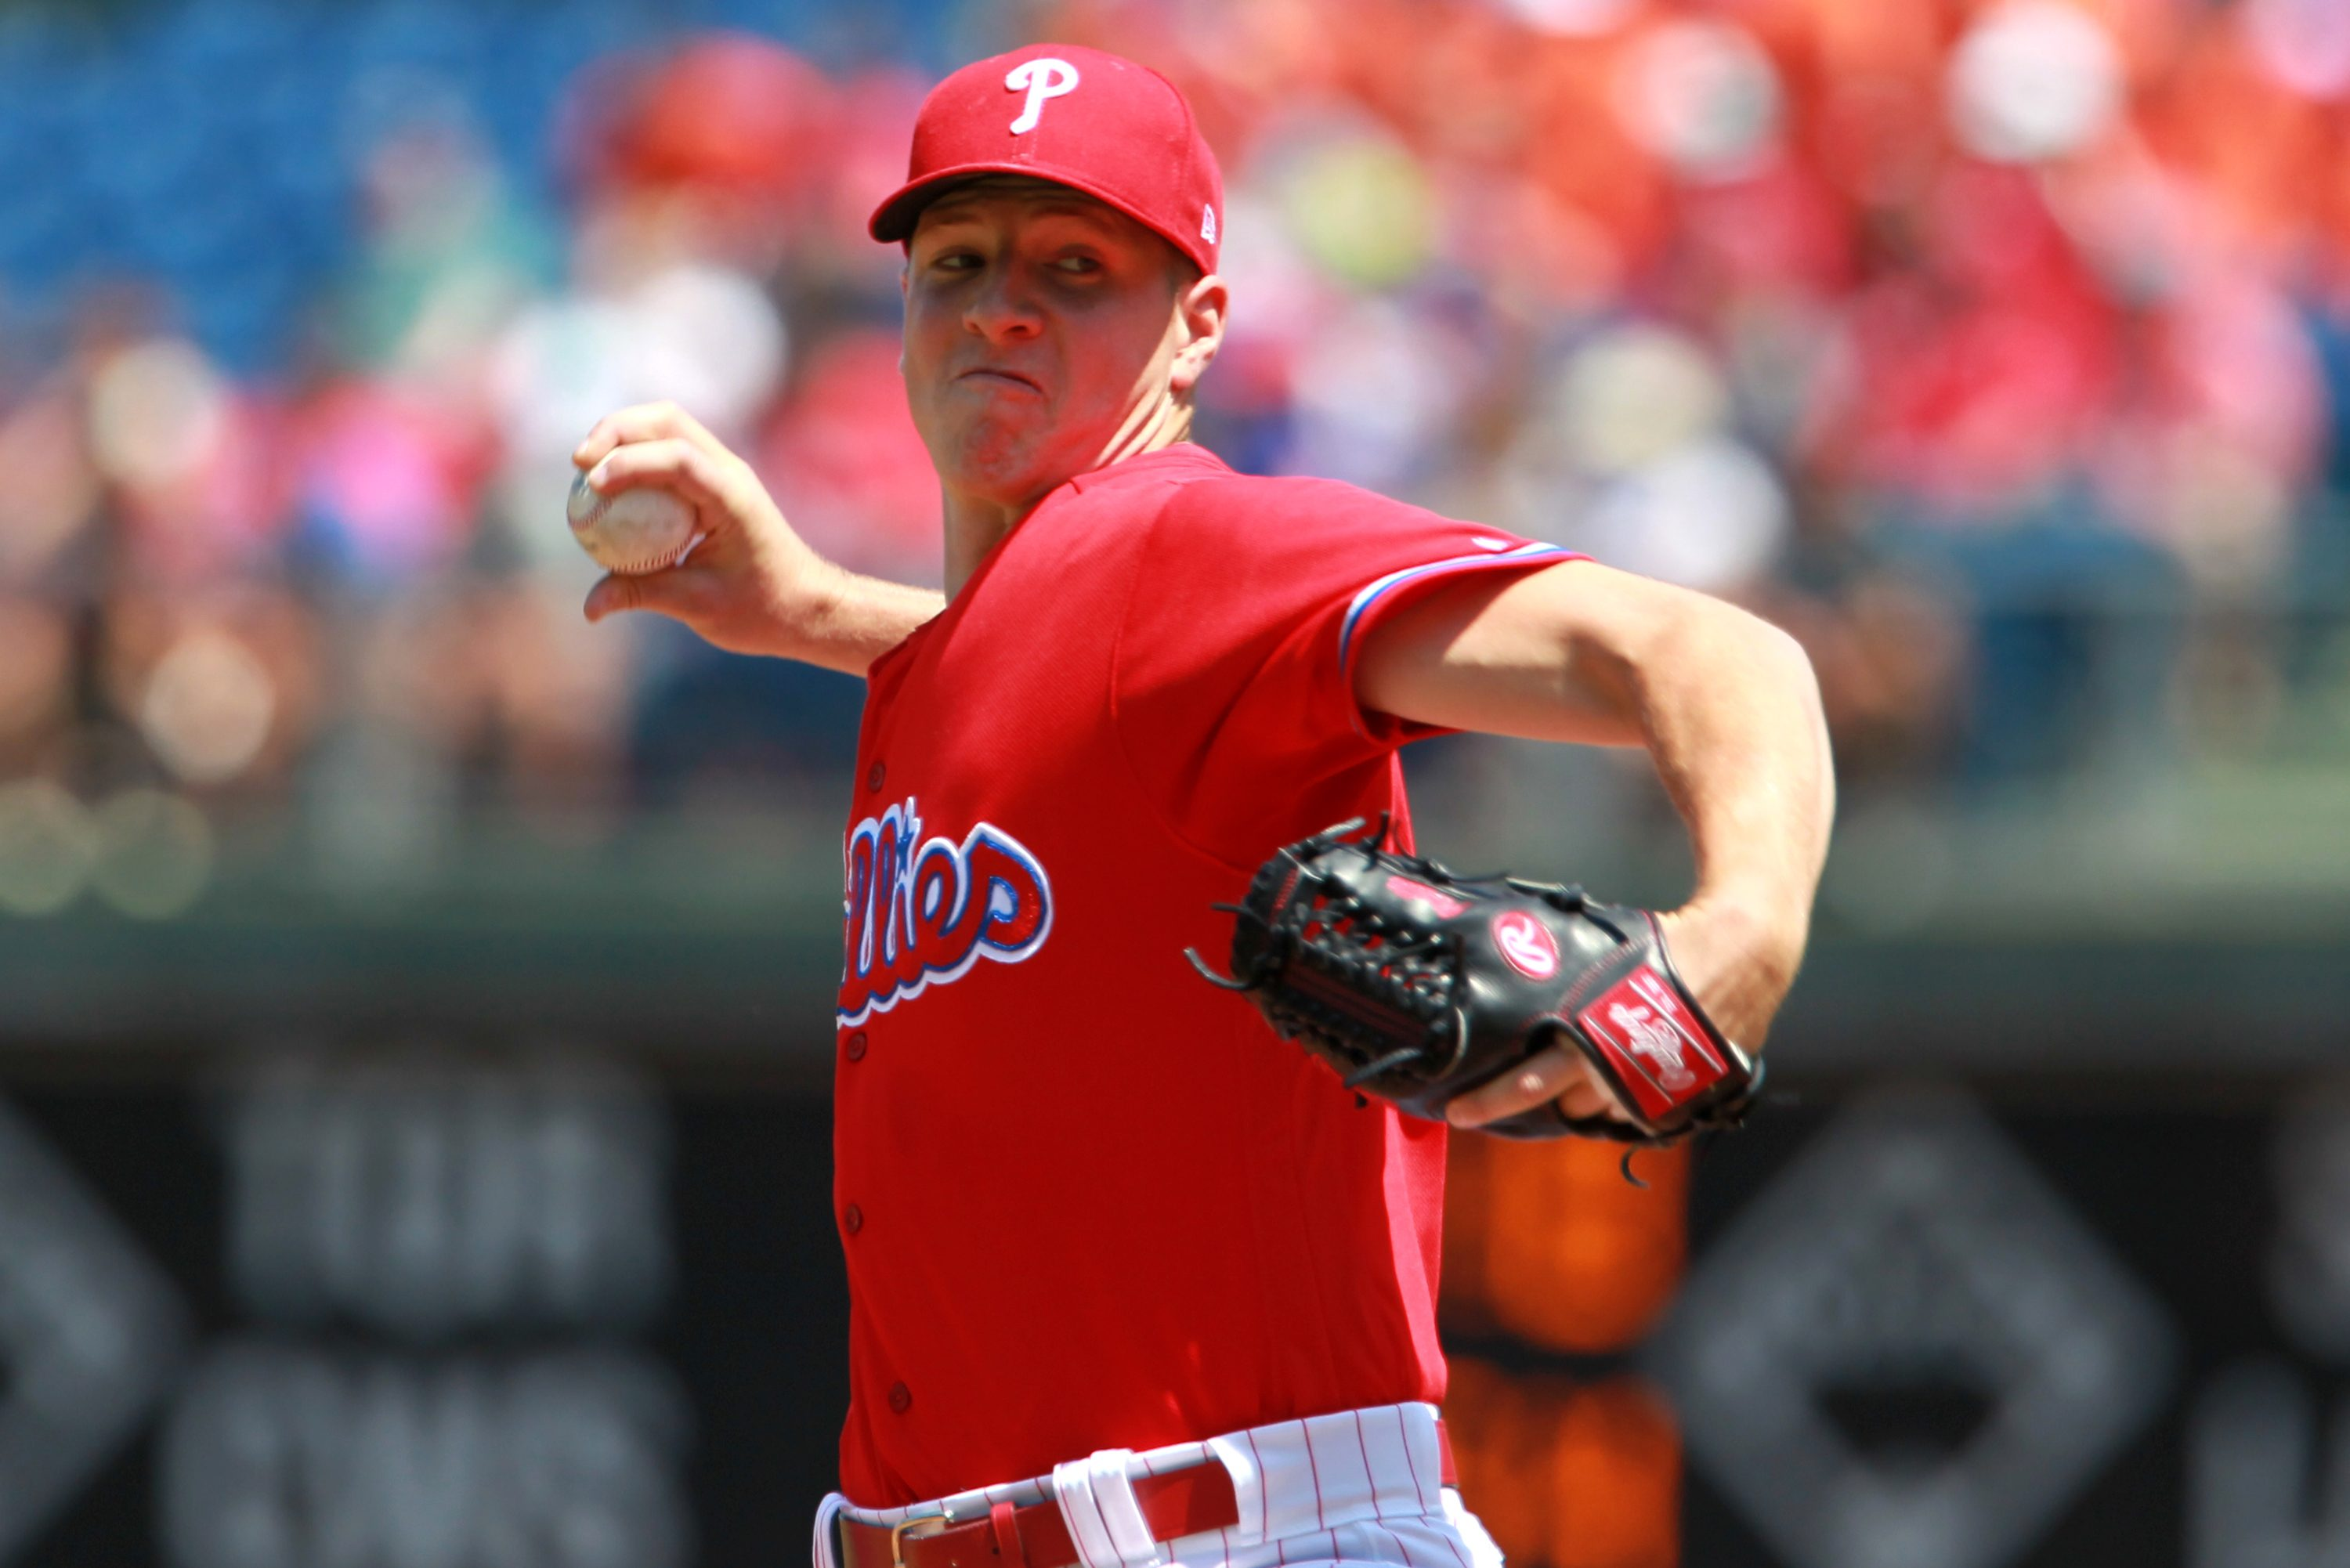 Nick Pivetta was one of eight Phillies pitchers to make his major-league debut this seasons. He struggled with the Phillies after dominating at triple-A Lehigh Valley.